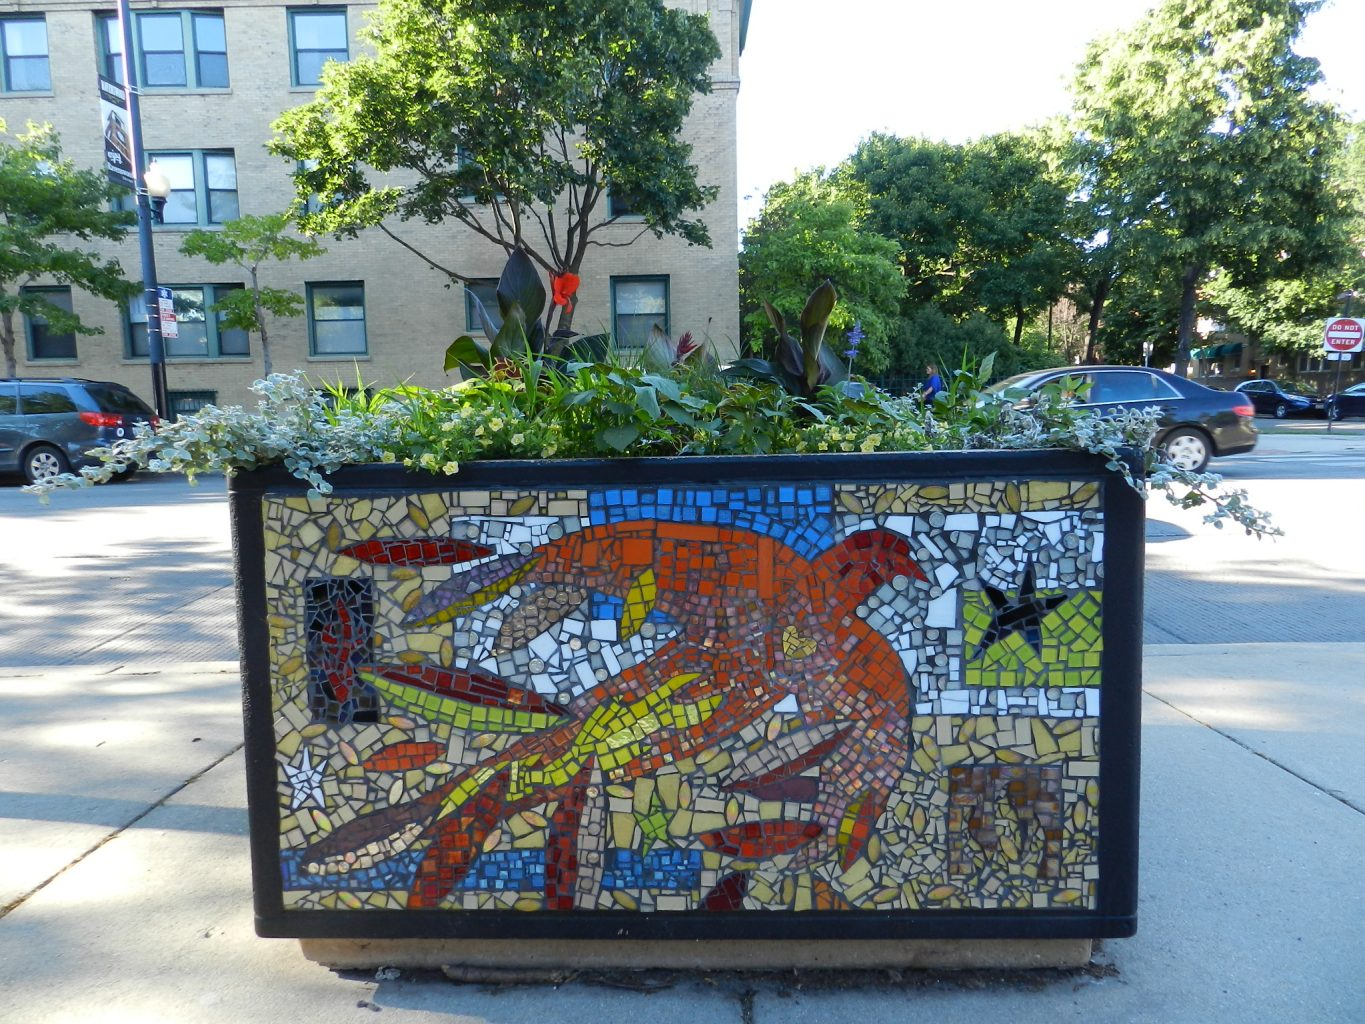 Mosaics in Chicago_Ravenswood Elementary School mosaics.